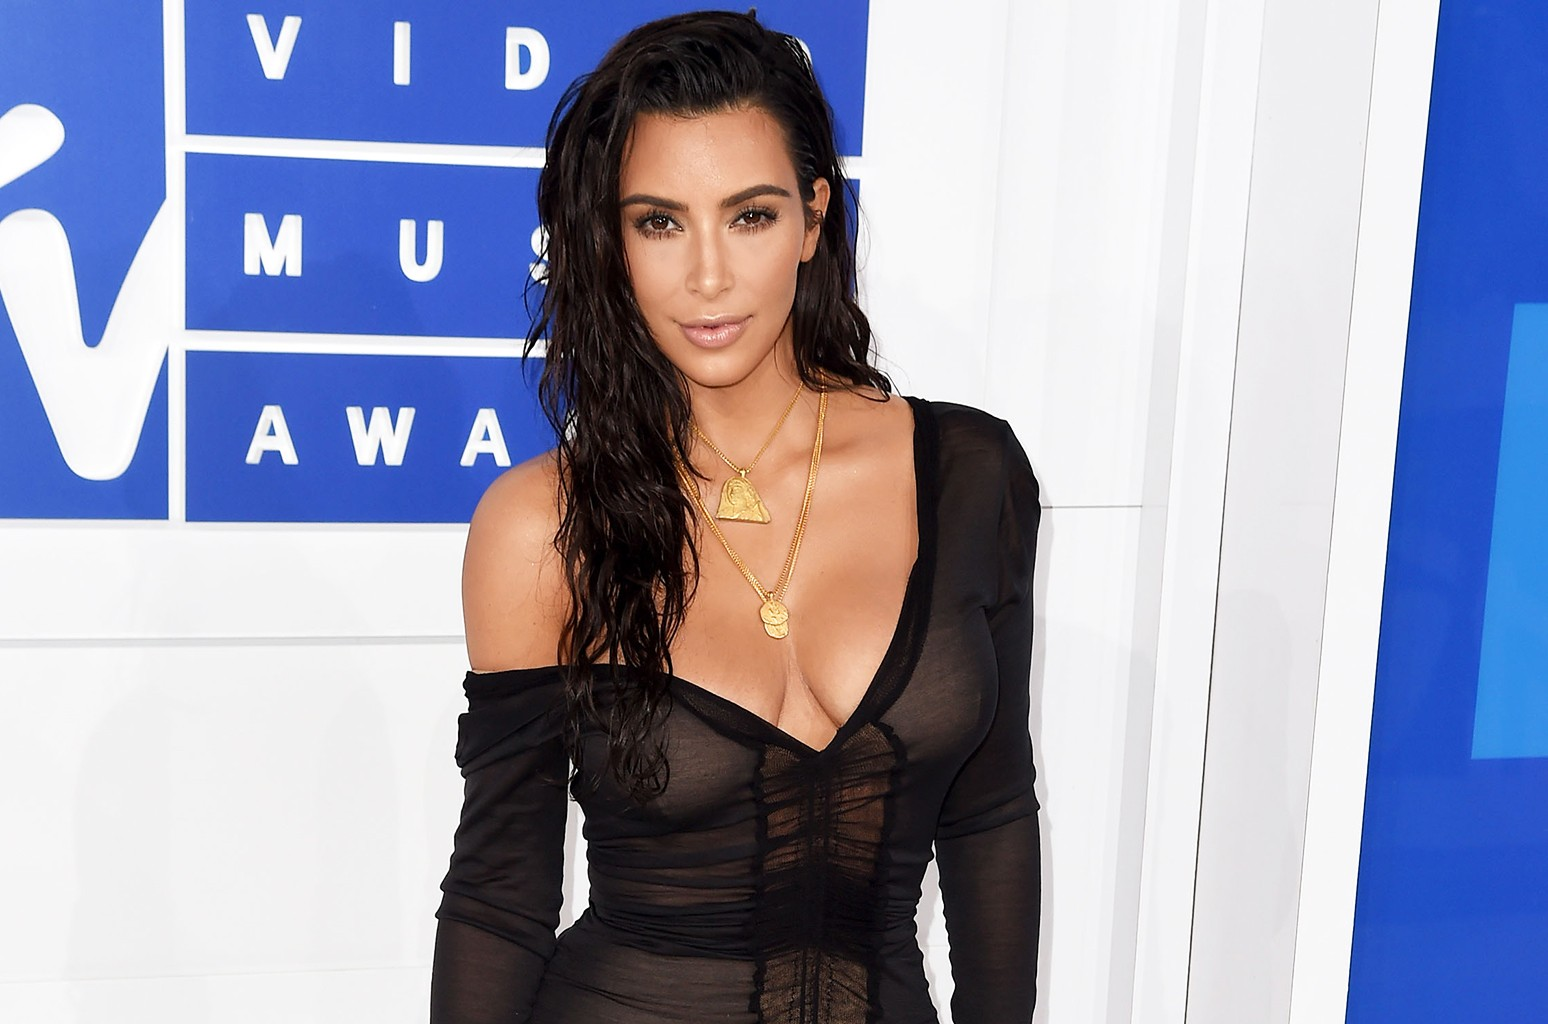 Kim Kardashian West attends the 2016 MTV Video Music Awards at Madison Square Garden on Aug. 28, 2016 in New York City.